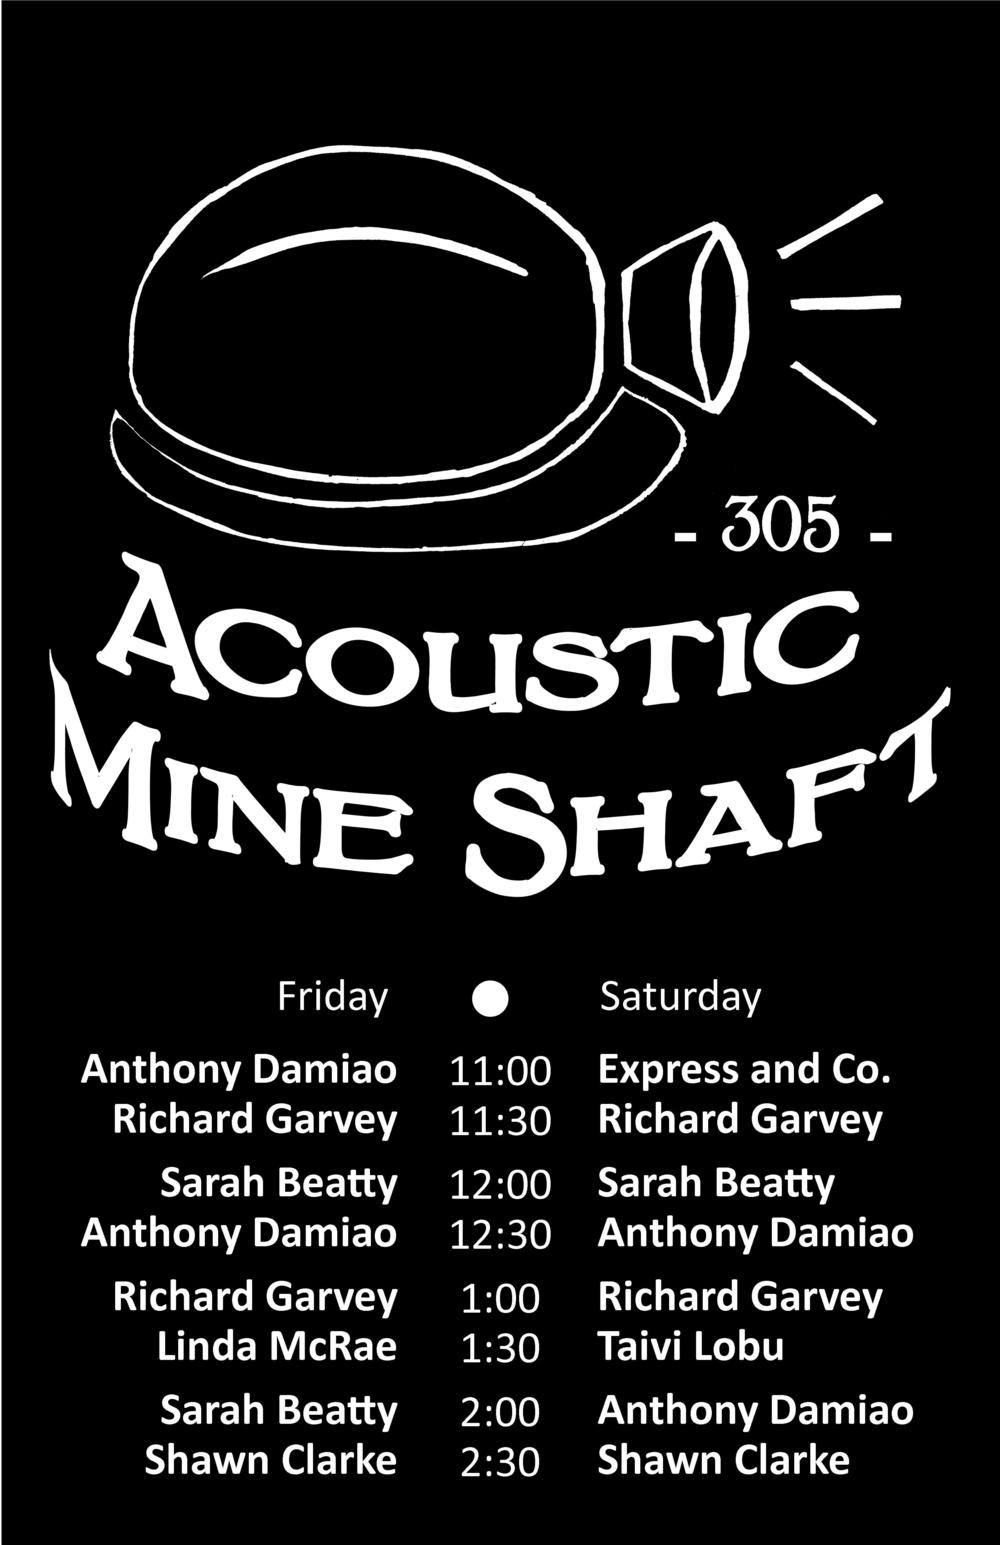 Acoustic Mine Shaft 305 - lrg poster black.jpg